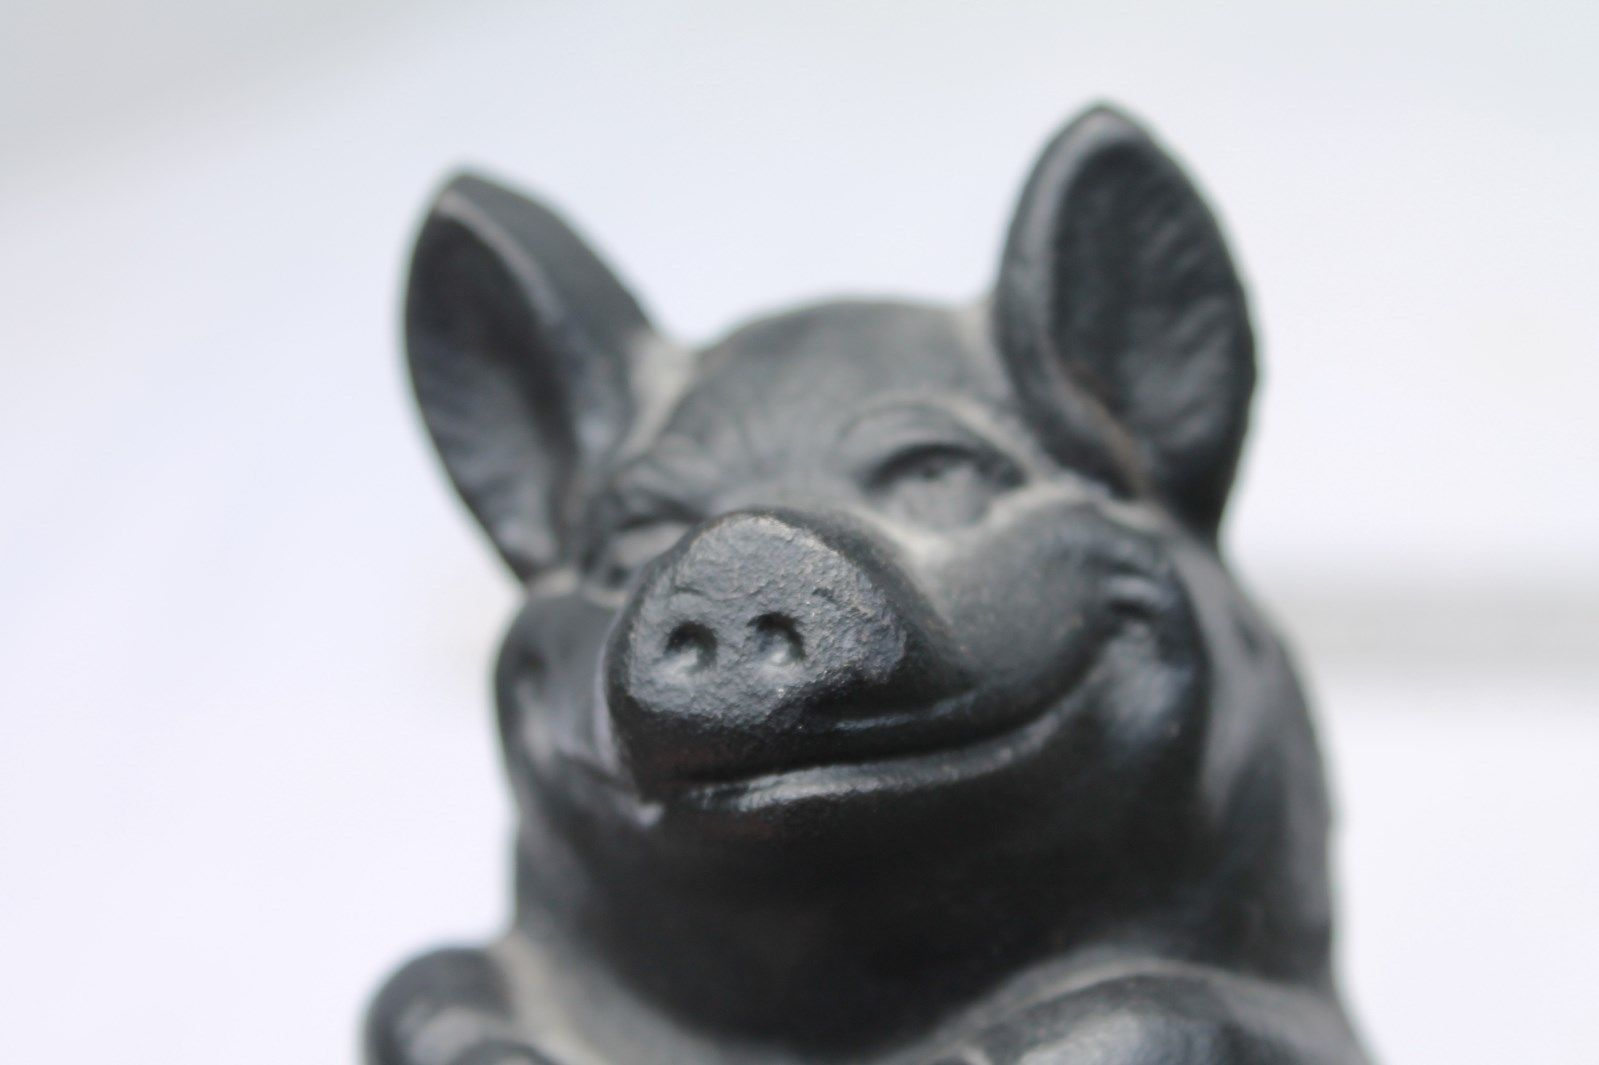 Antique Vintage Cast Iron Pig Bank Wise and Thrifty Black Doorstop By J. M. Art